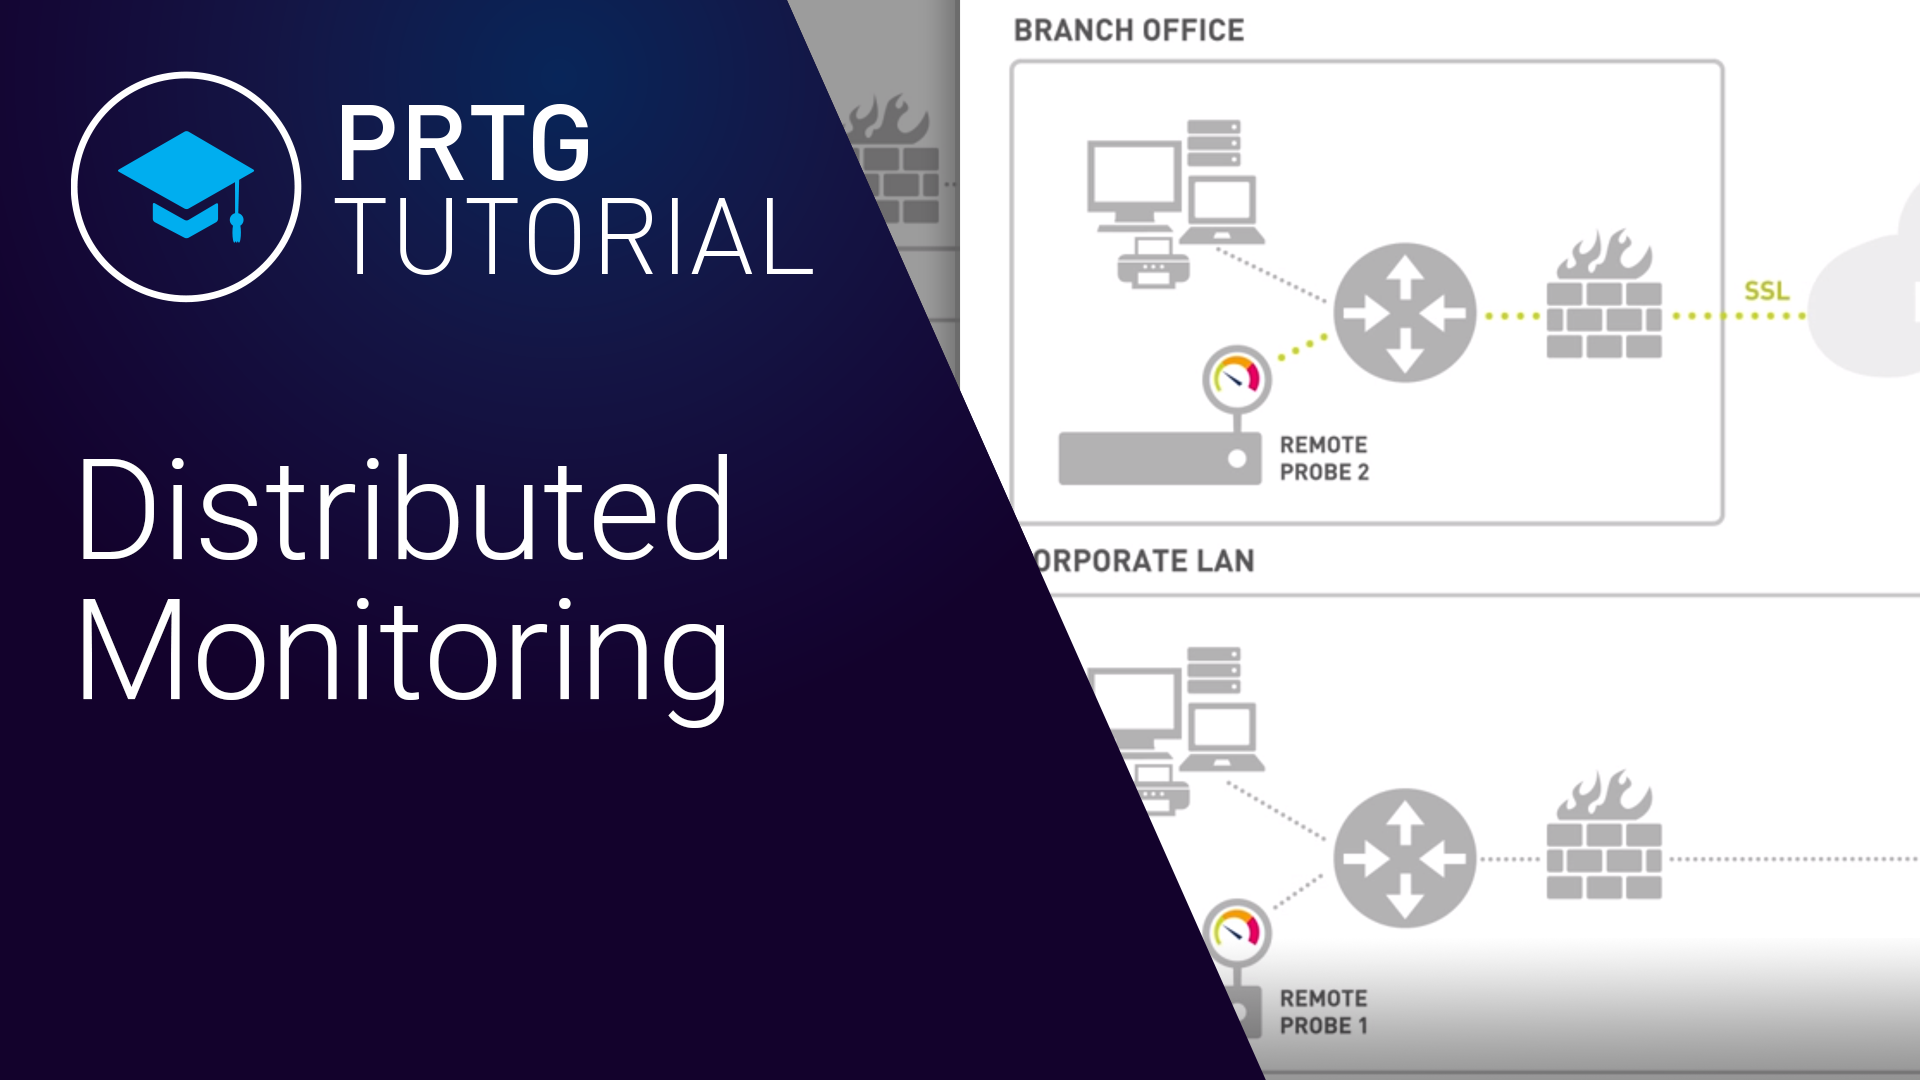 Video: Monitorización Distribuida con PRTG (Videos, Overview)